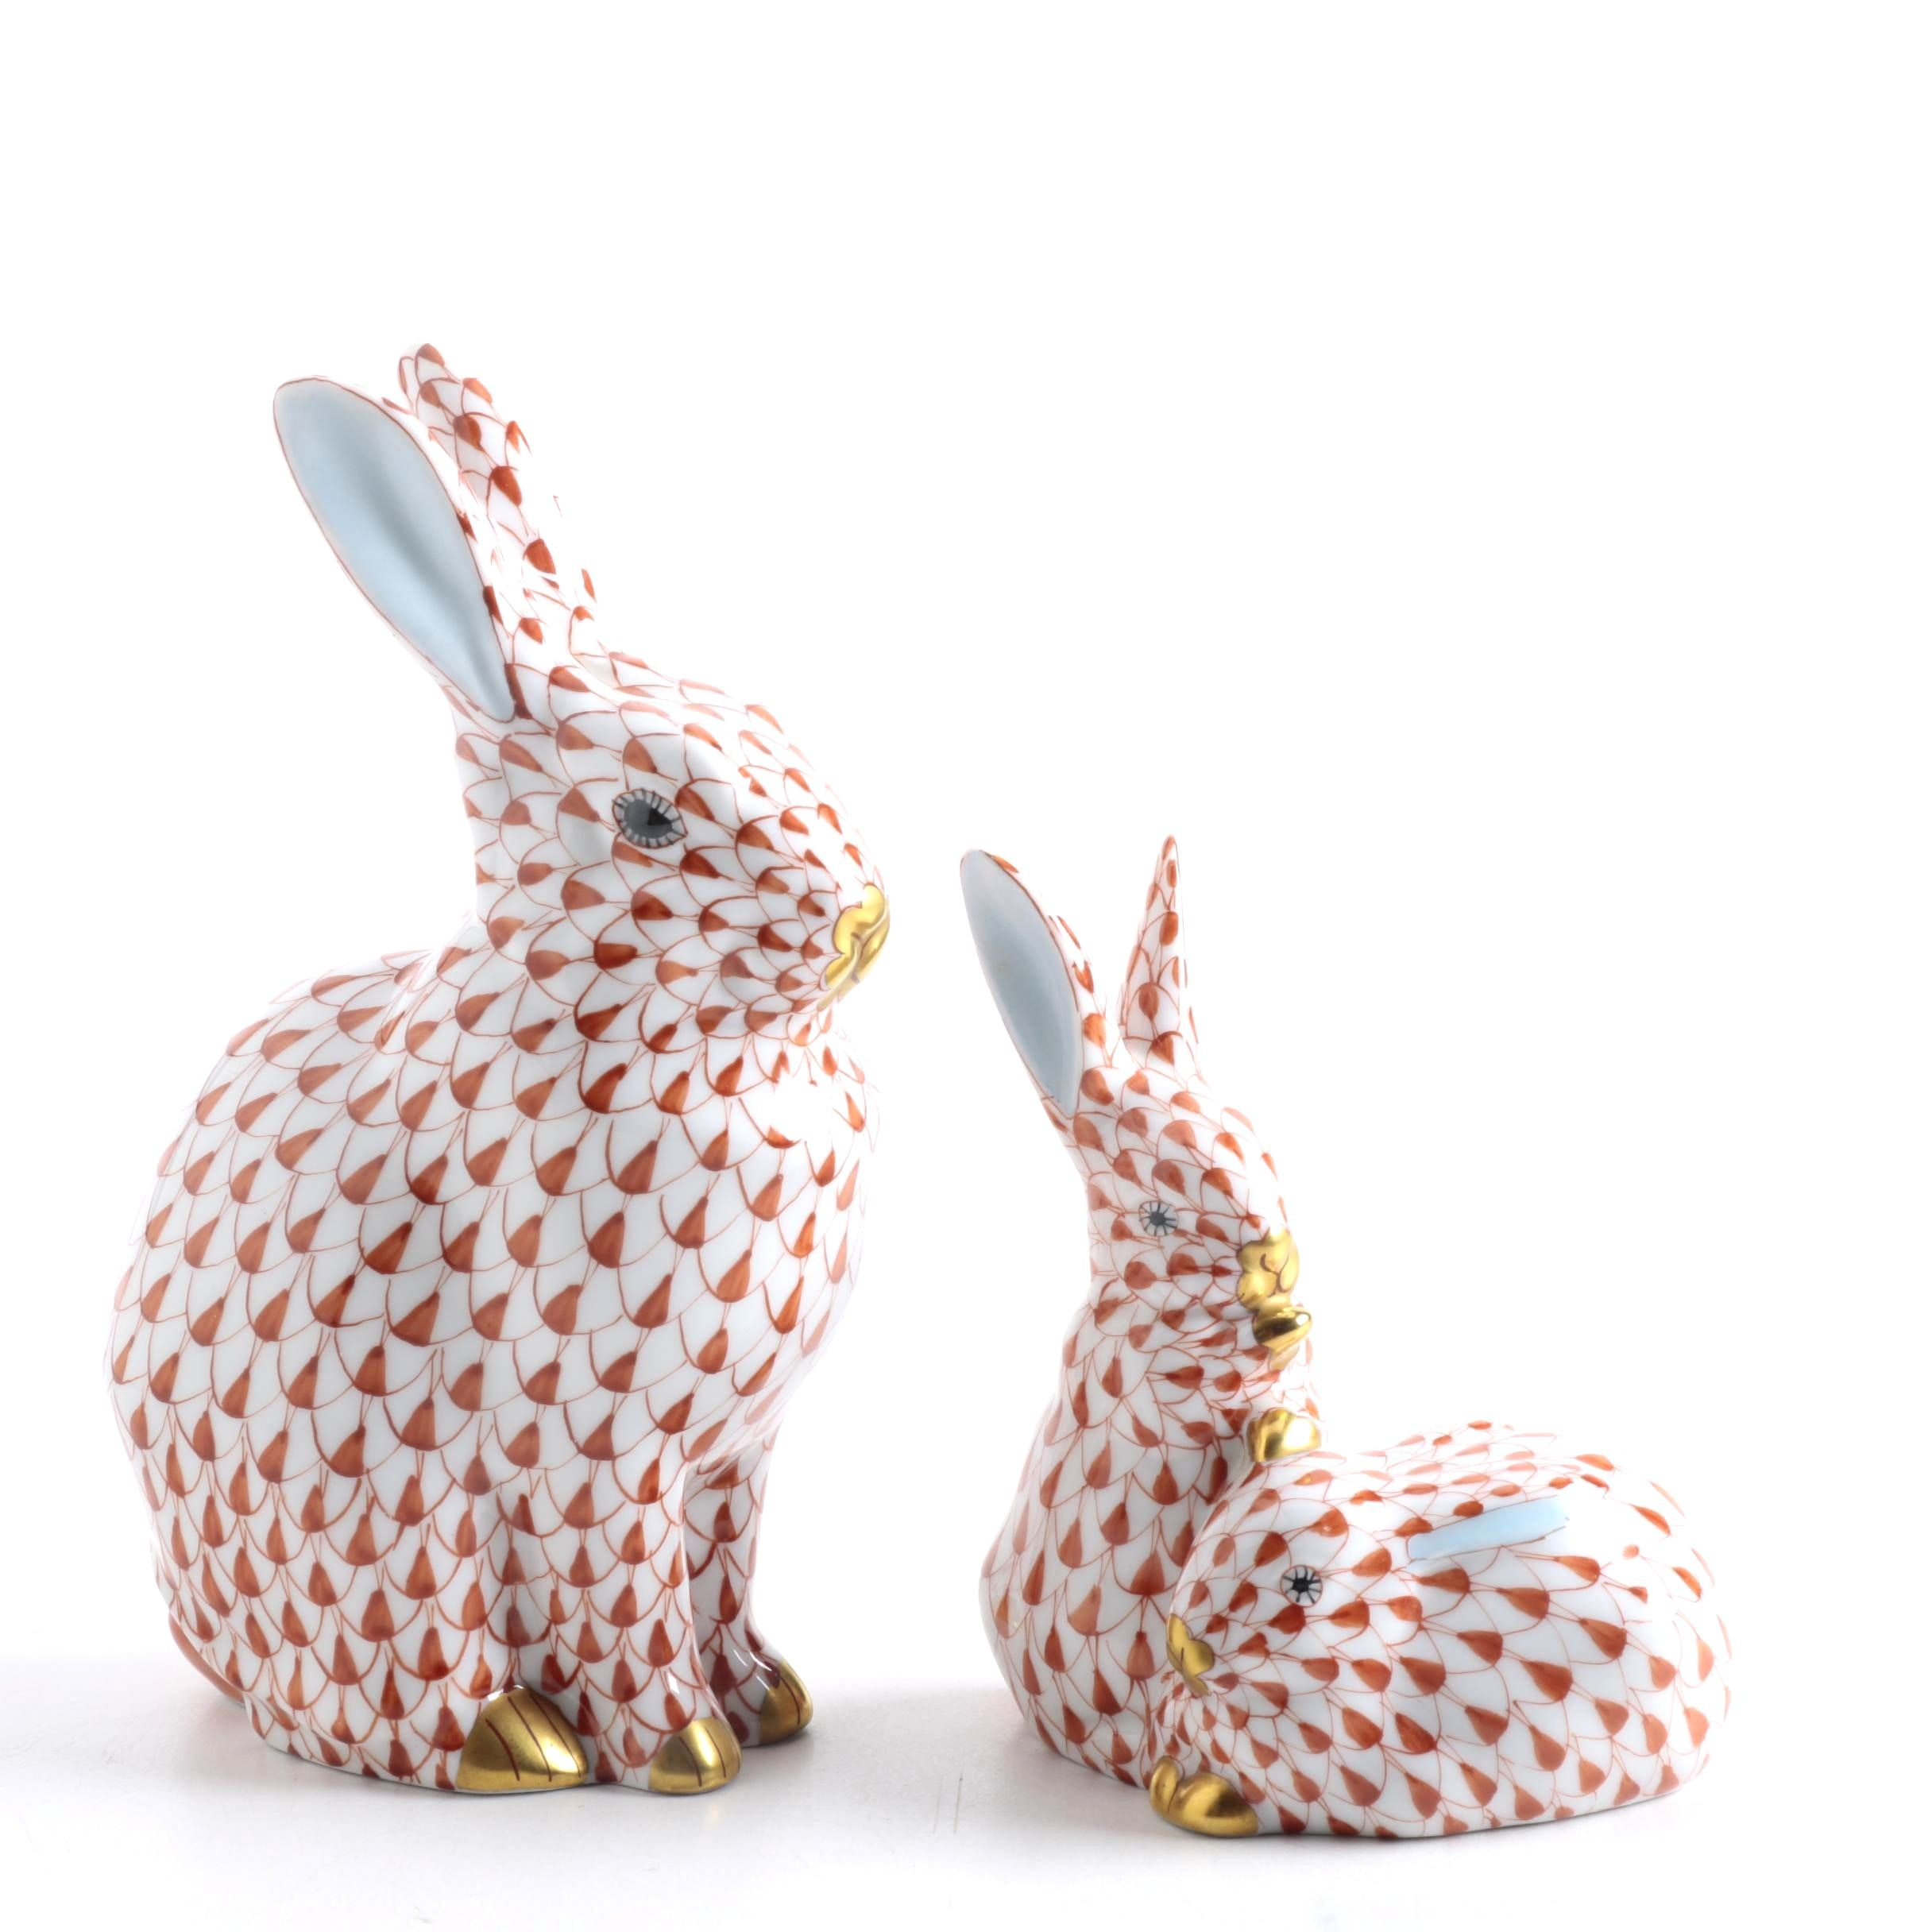 Herend Hungary Hand Painted Bunny Figurines